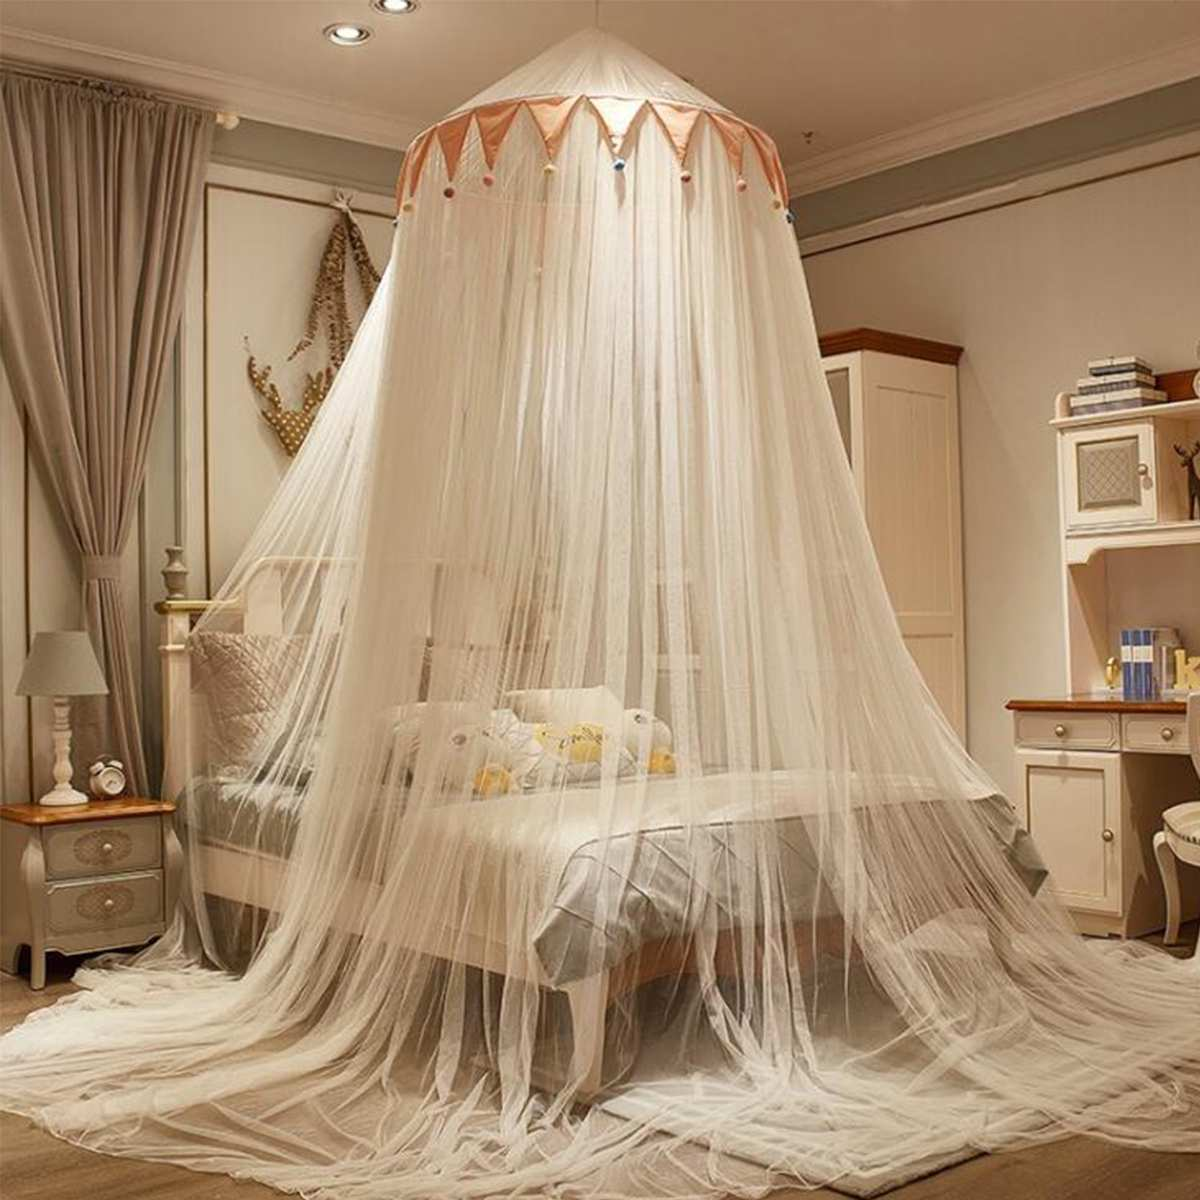 Bed Canopy Hung Mosquito Net Princess Bed Tent Curtain Foldable Canopy On The Bed Elegant Fairy Lace